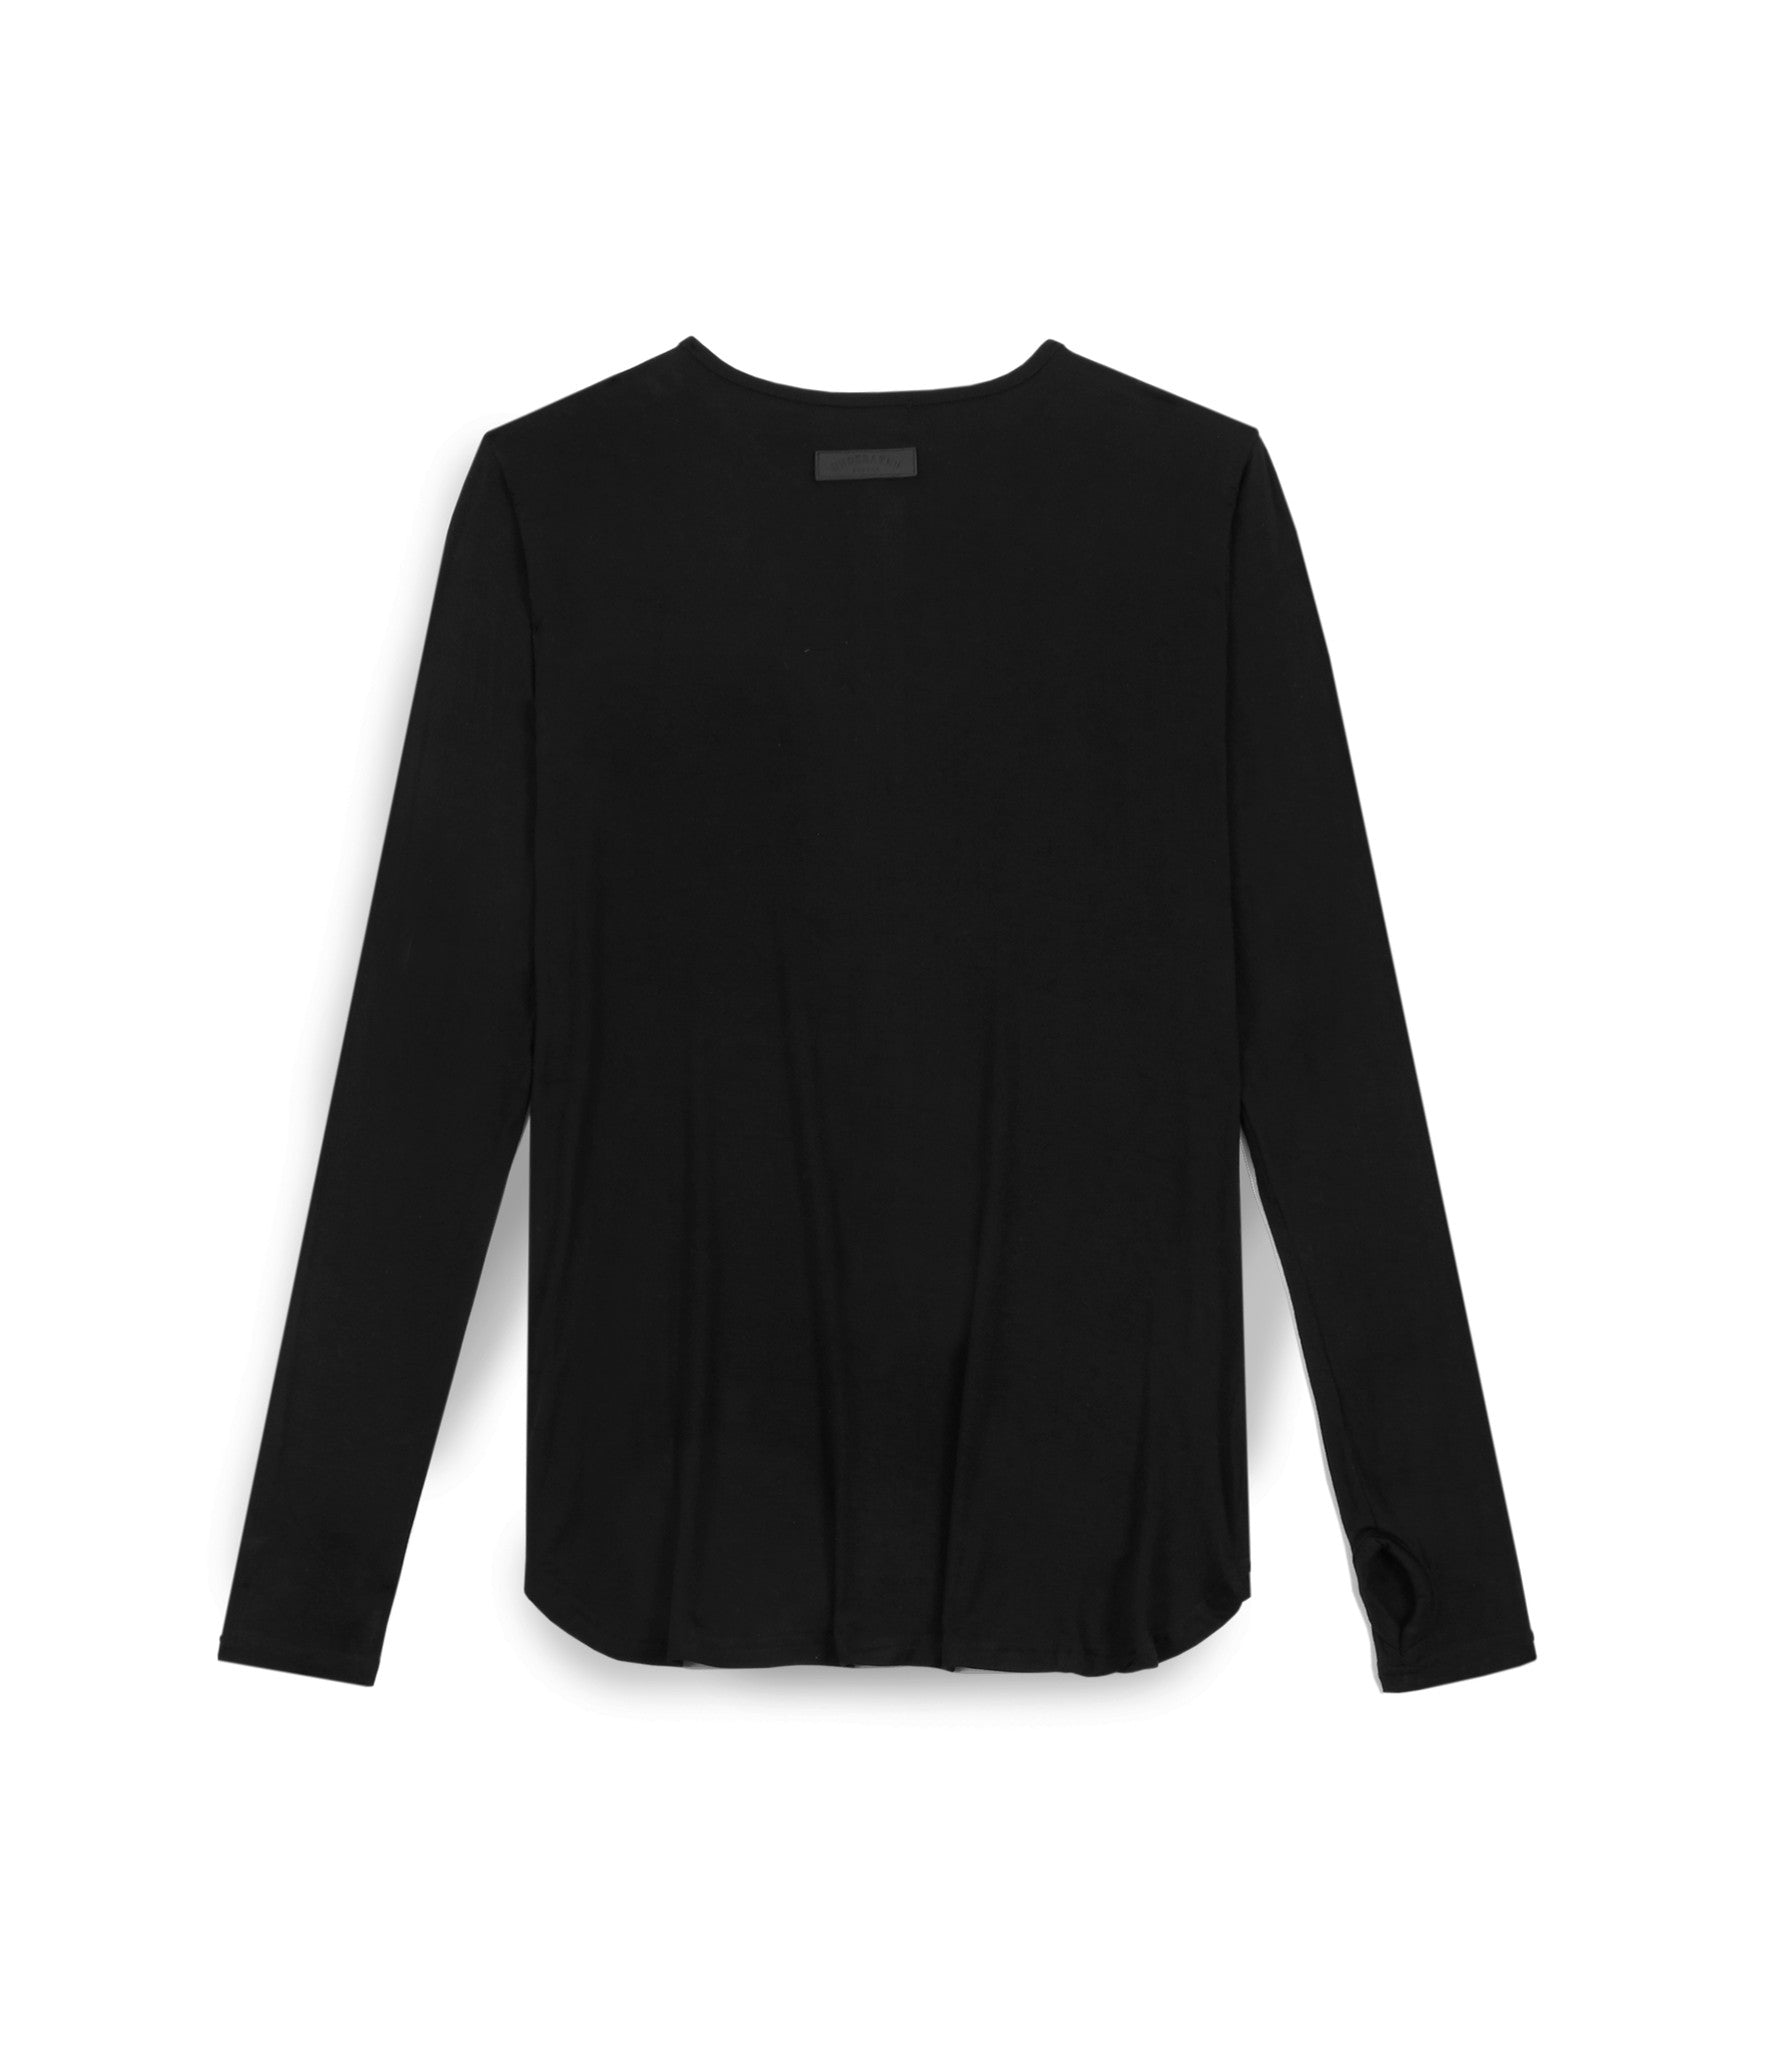 LS264 Under Layer Henley Tee - Black - underated london - underatedco - 2